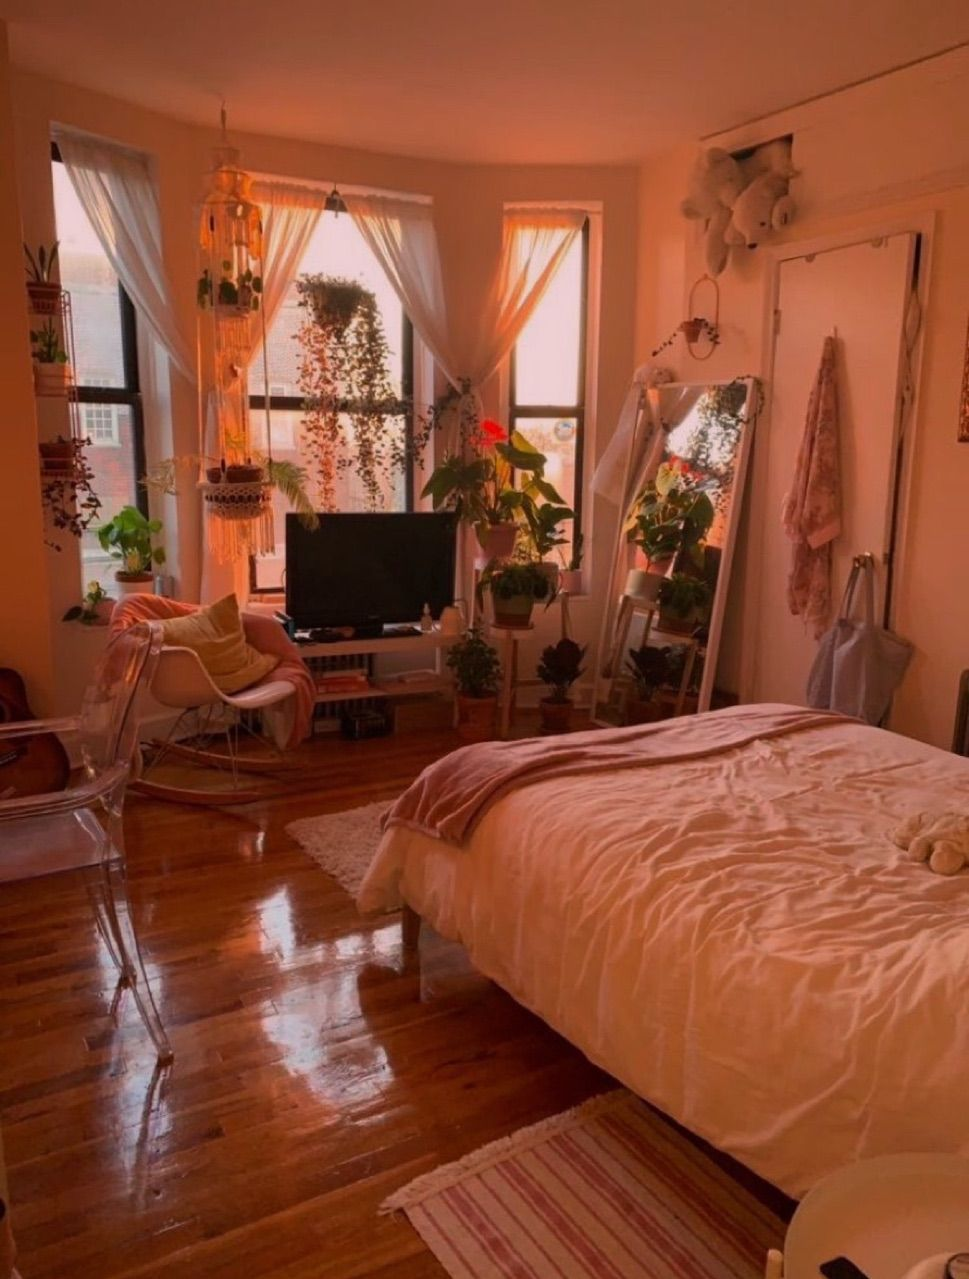 cottagecore bedroom - Google Search in 2020   College ...